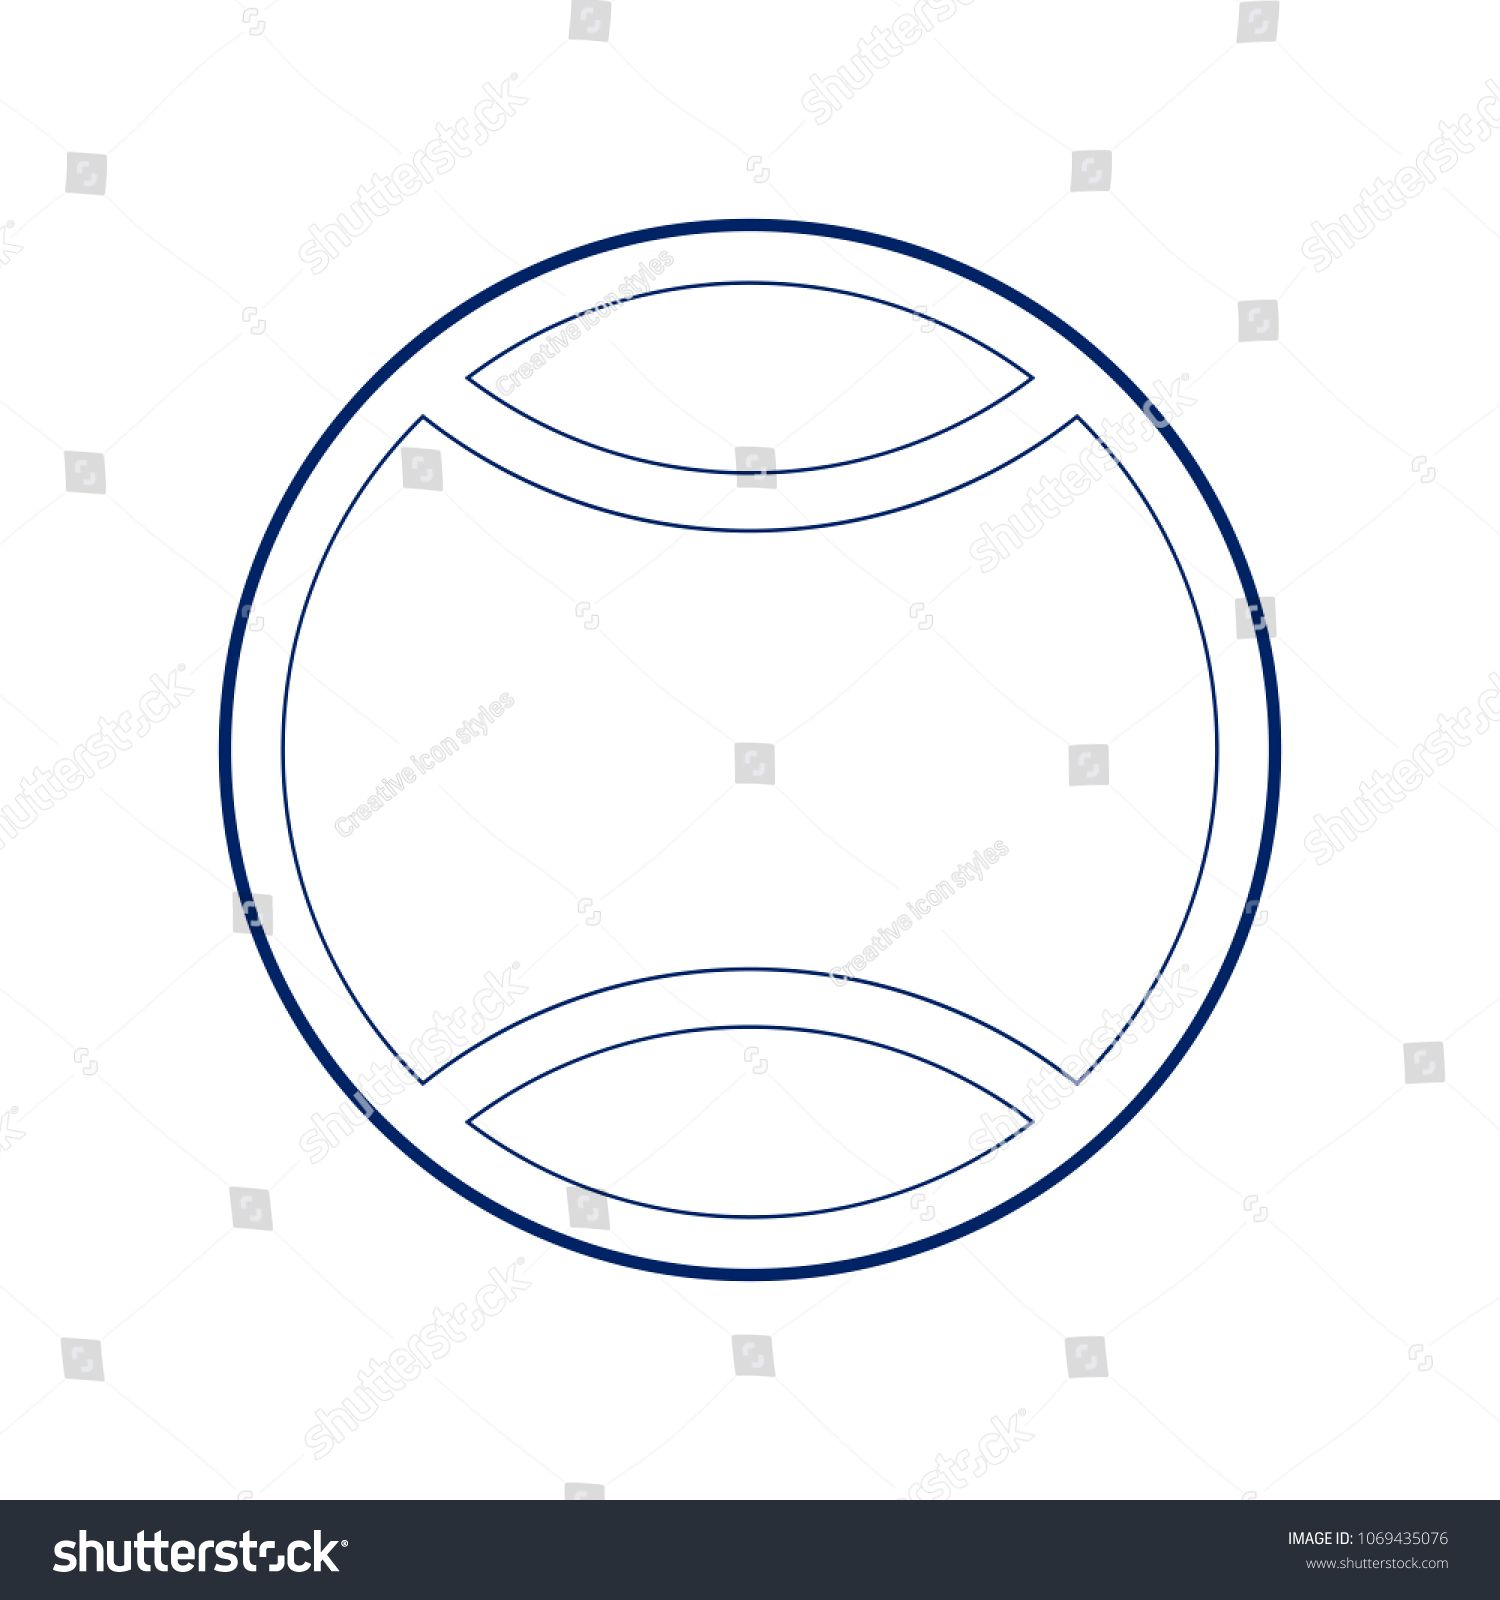 Tennis Ball Sign Illustration Vector Flat Style Black Icon On White Ad Ad Illustration Vector Sign T In 2020 Round Mirror Bathroom Photo Editing Mockup Design